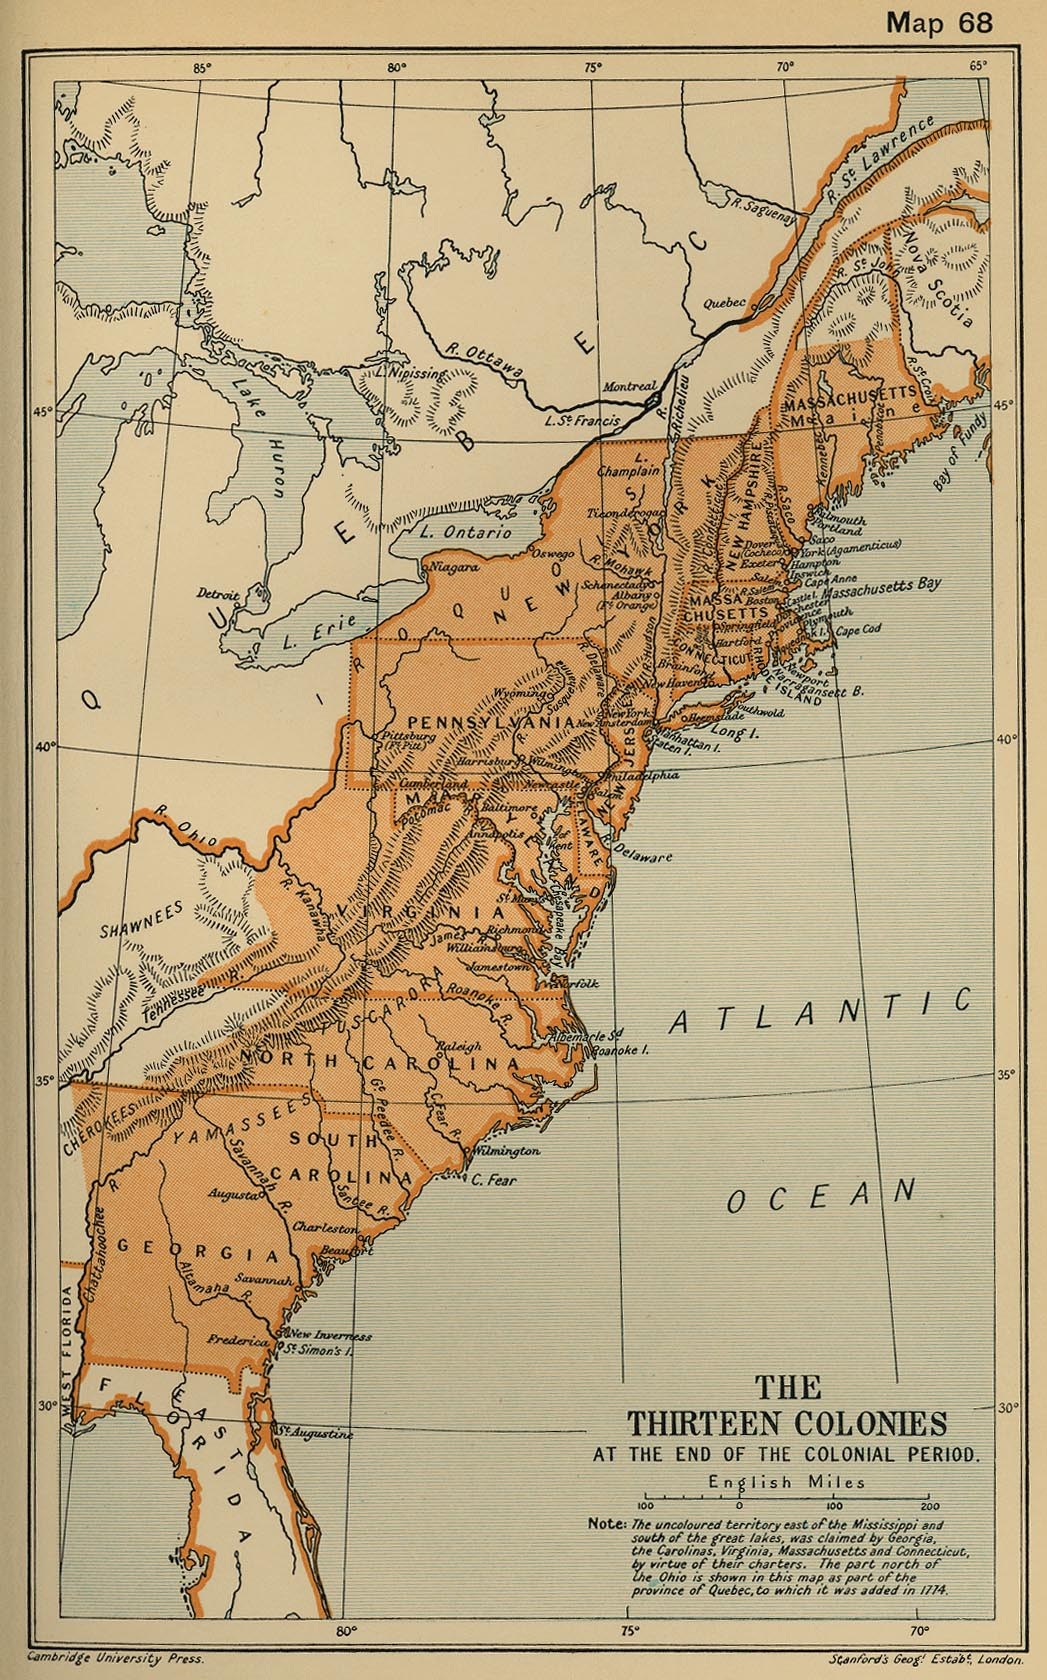 Map of the American Colonies 1775